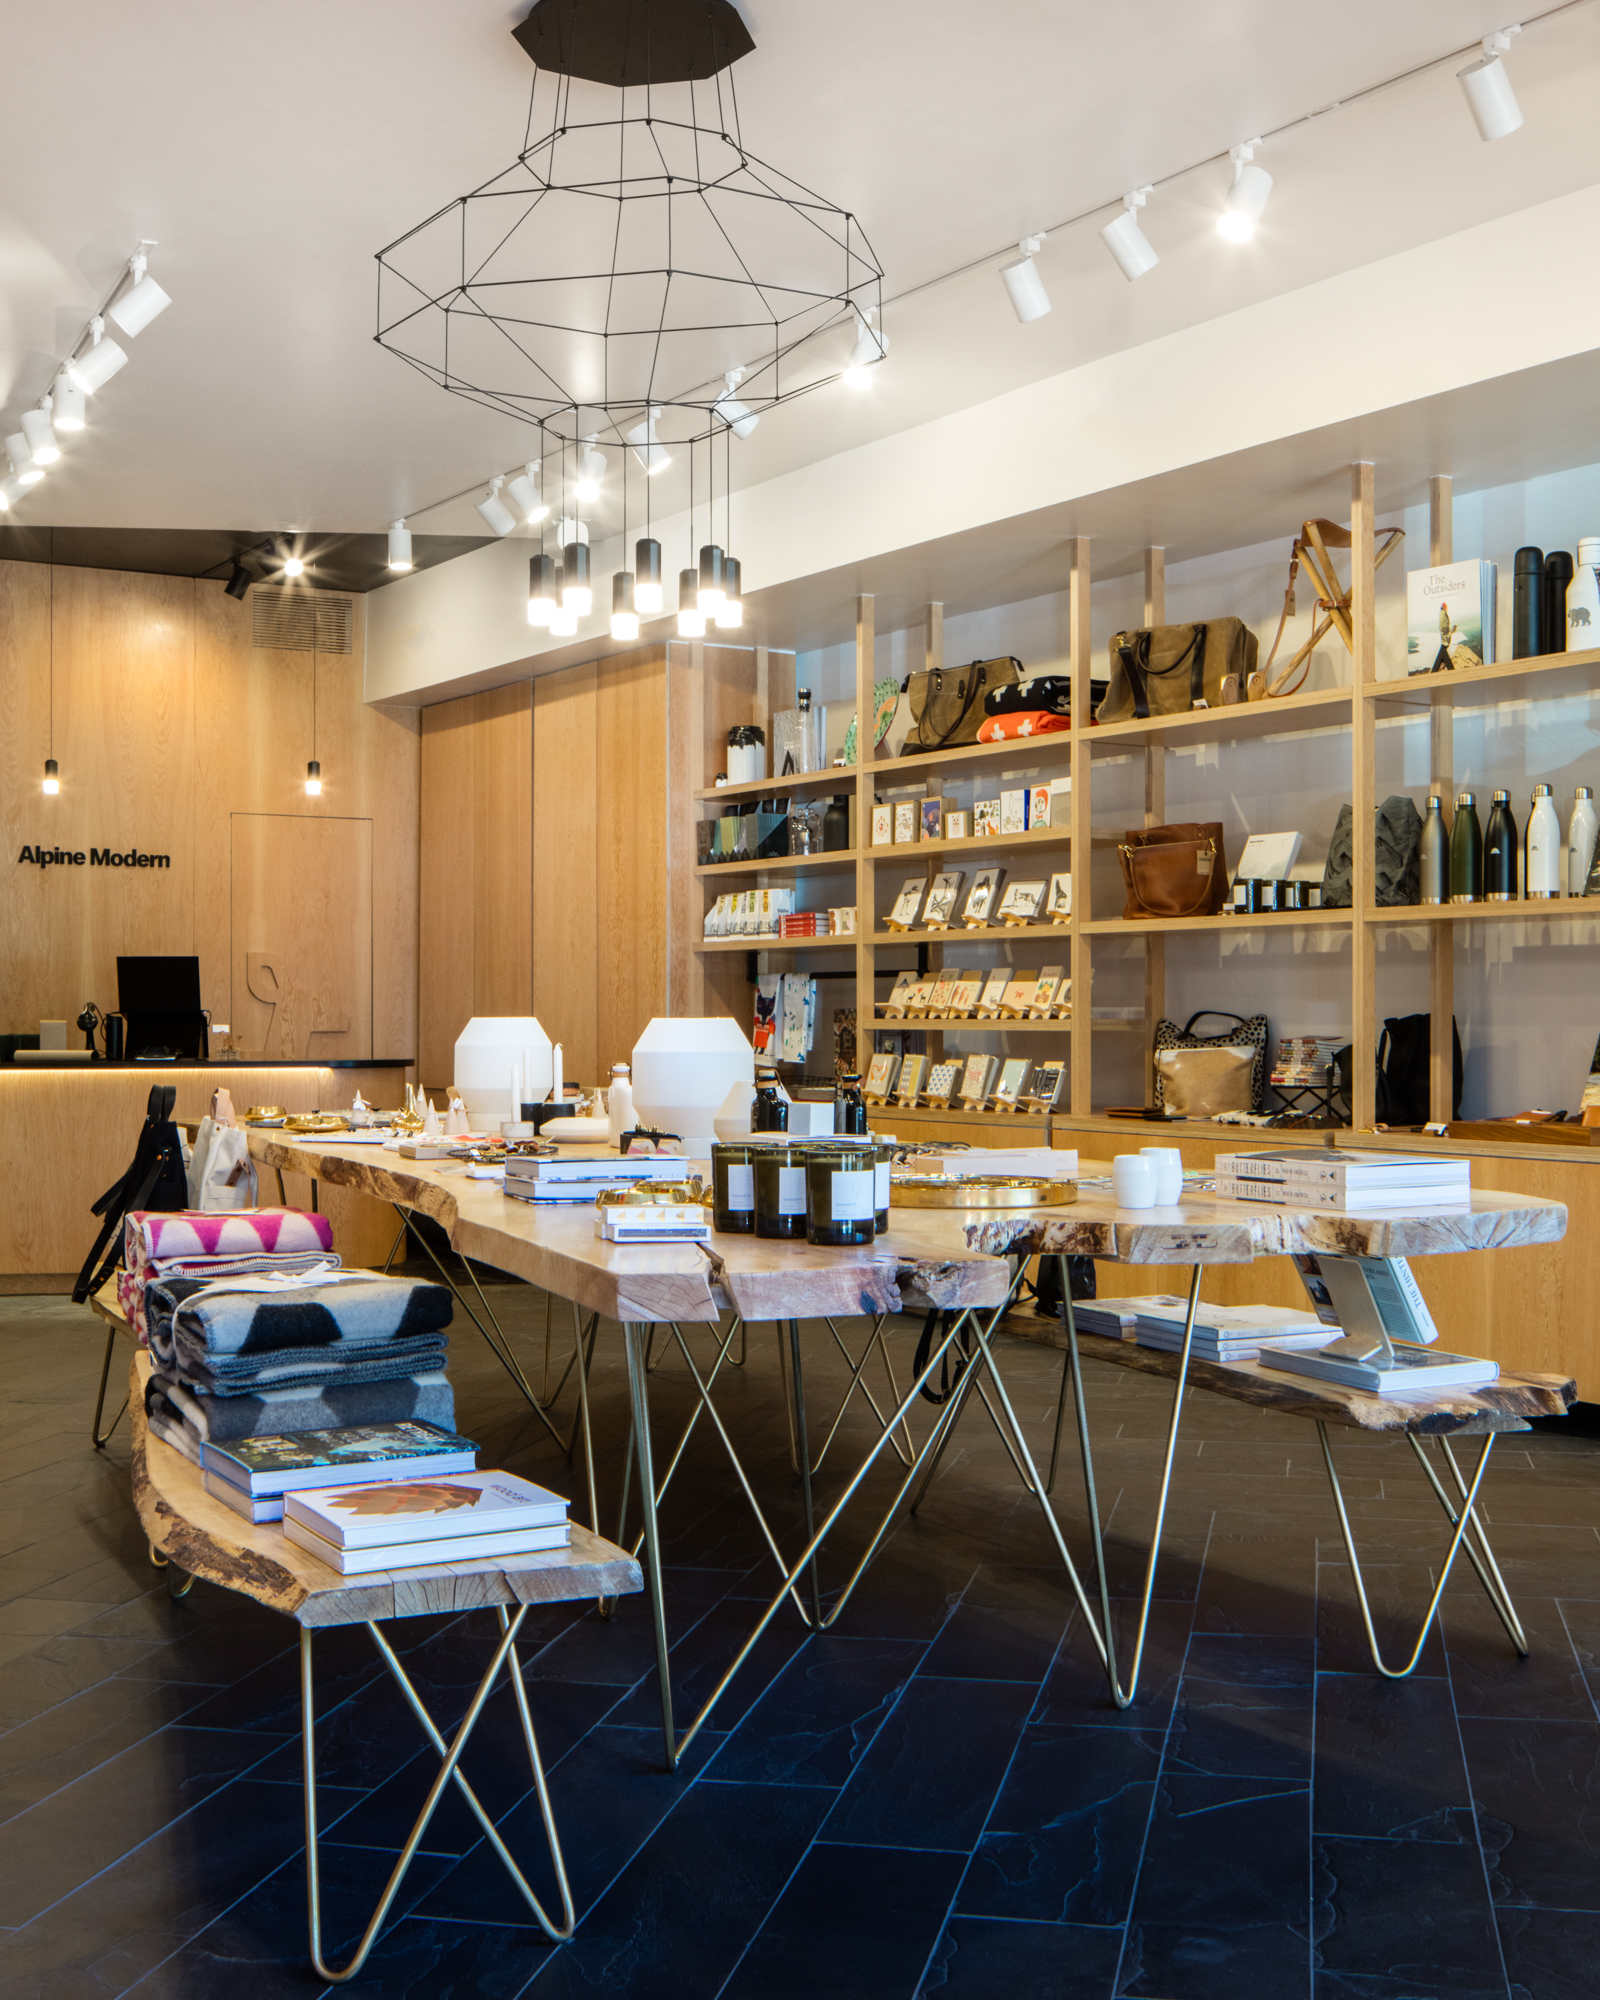 Alpine Modern Shop + Coffee Bar at Pearl West